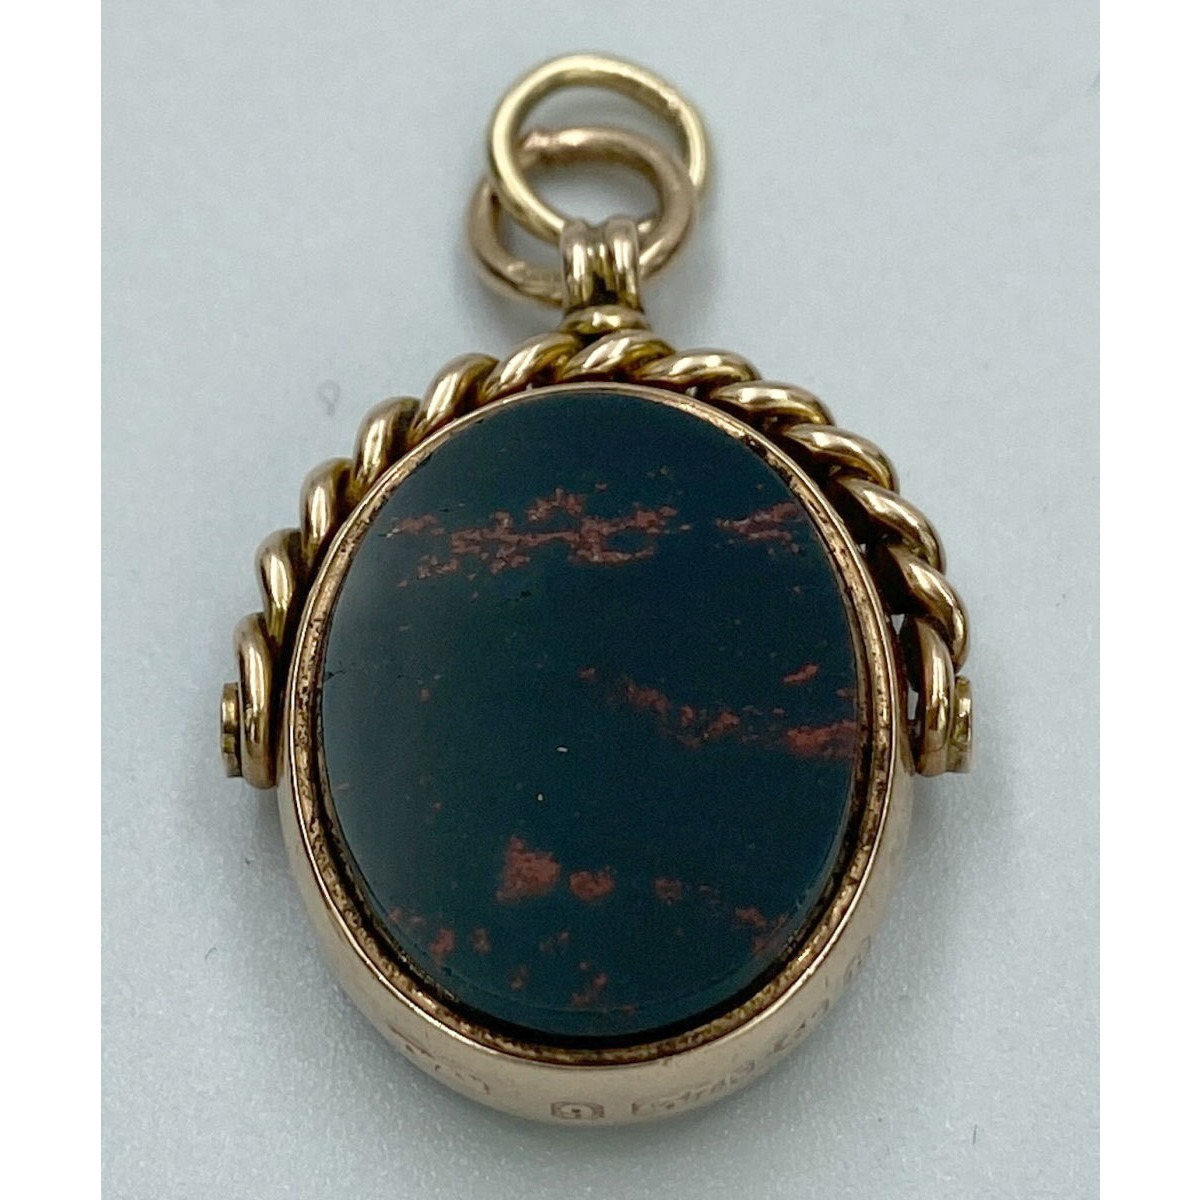 Different Oval-Shaped Small Antique English Gold Spinner Watch Fob - Perfect for Grouping